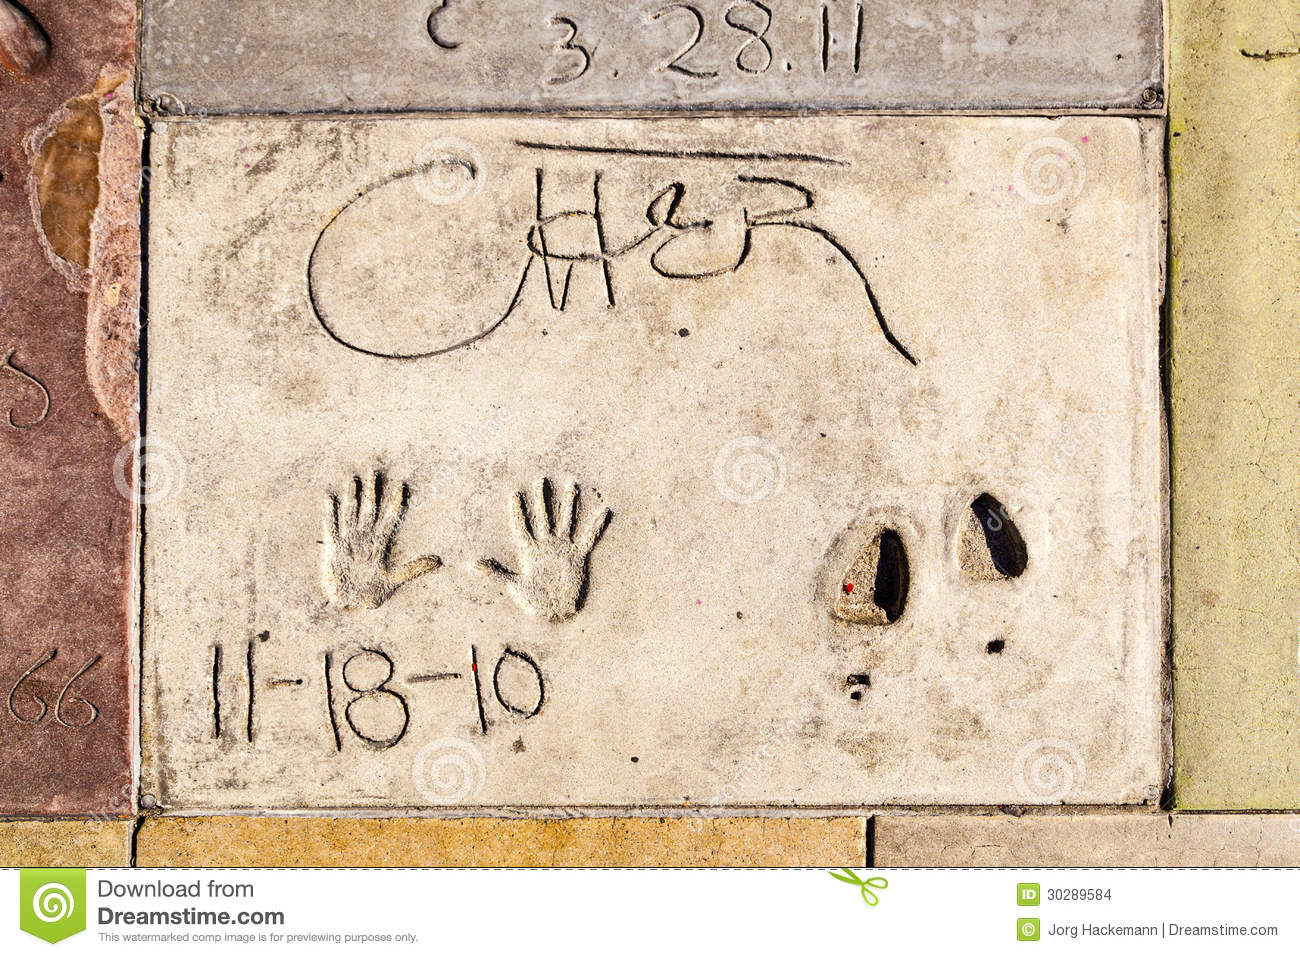 Handprints de Cher no bulevar de Hollywood no concreto do qui